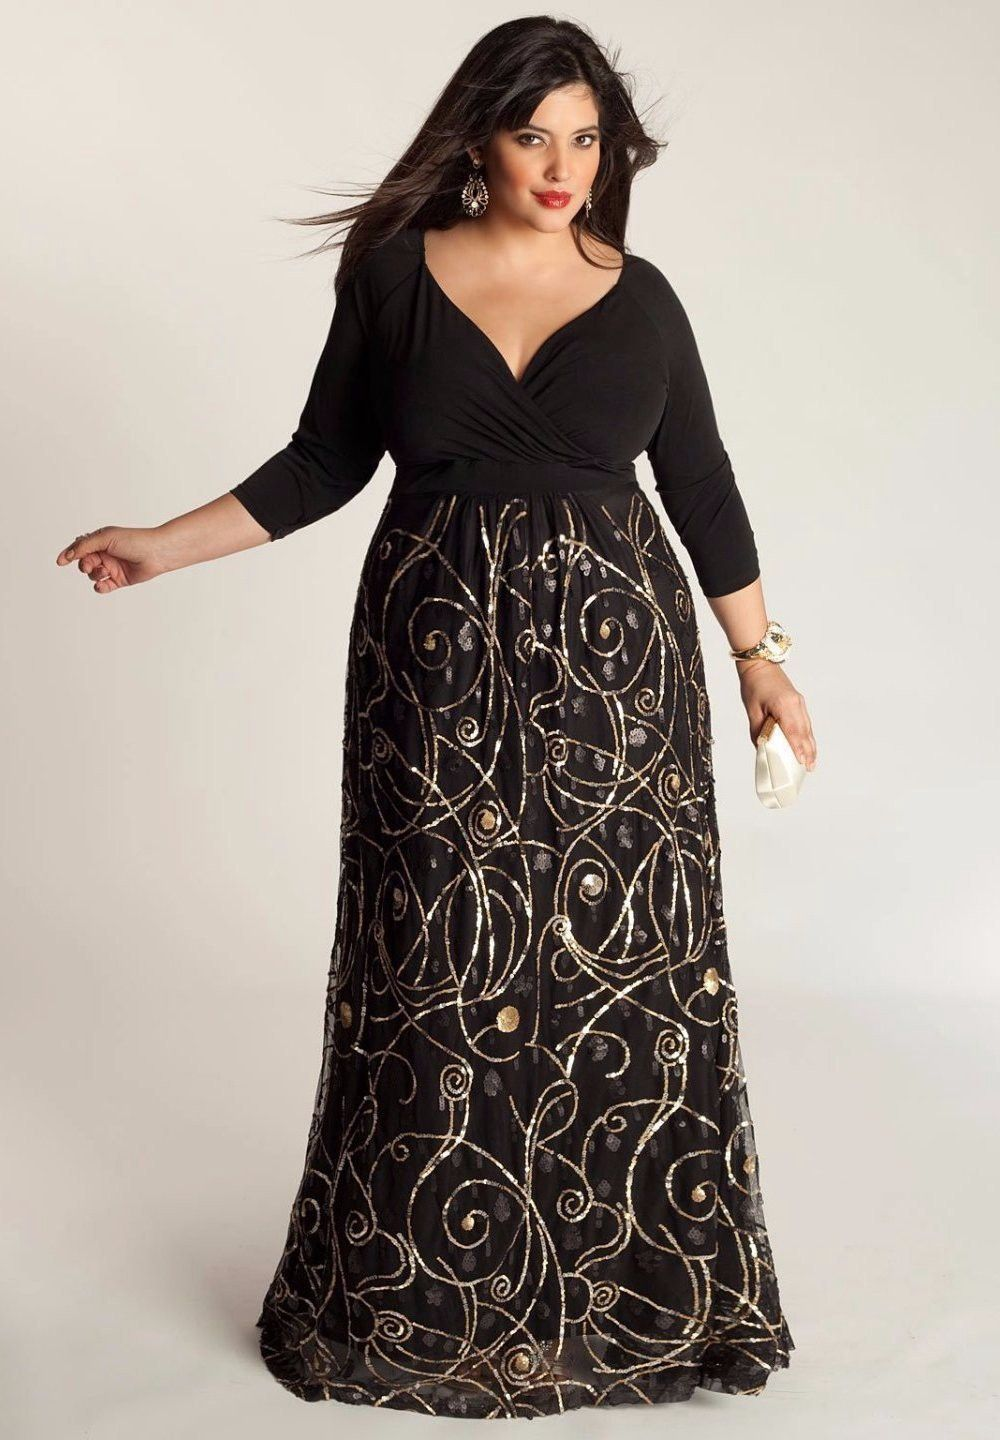 Igigi kandinsky gown madetoorder black products in